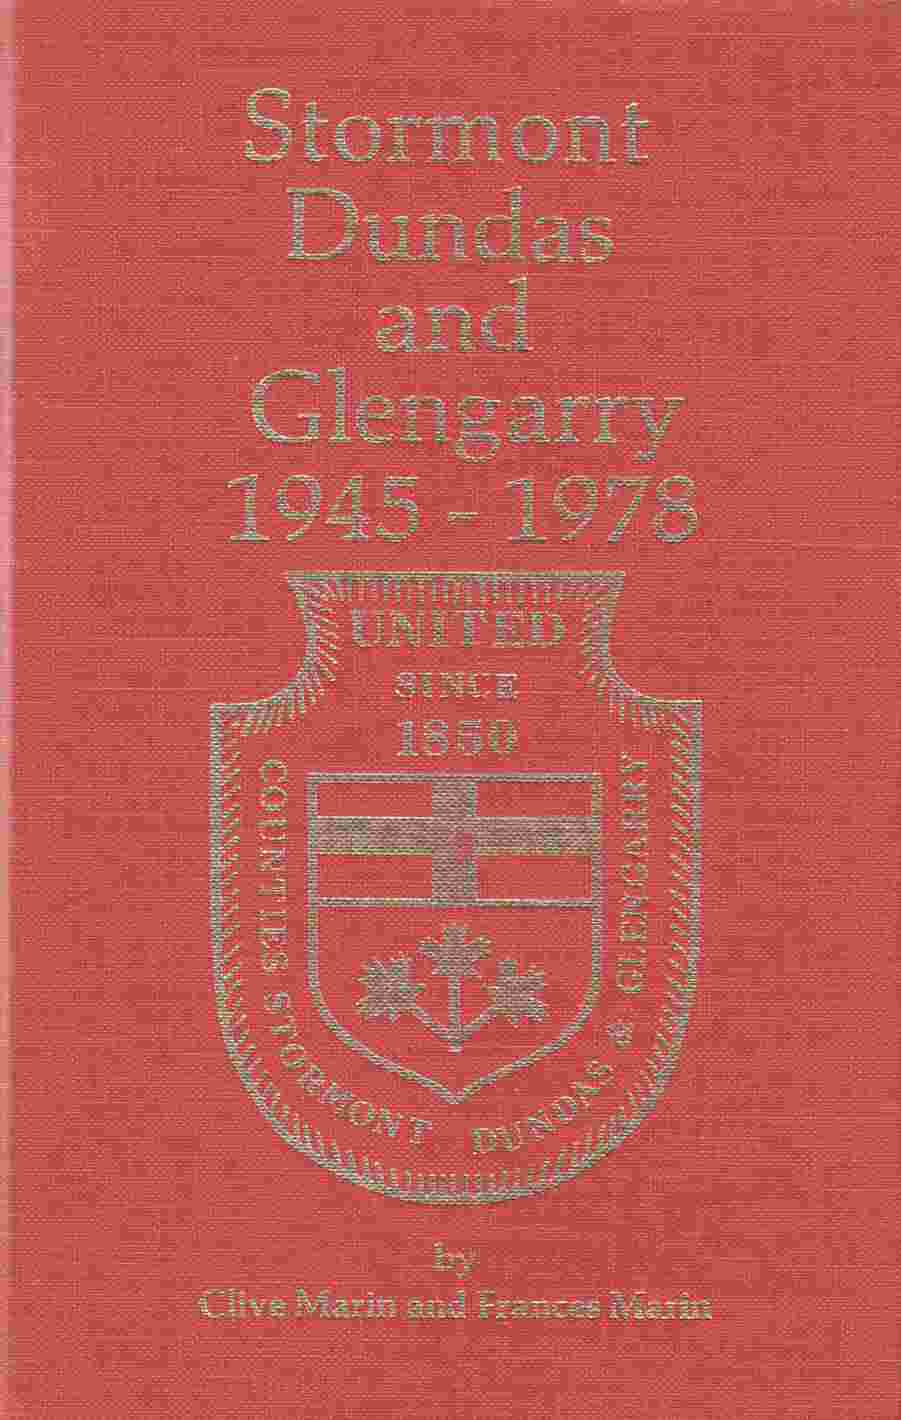 Image for Stormont Dundas and Glengarry 1945-1978